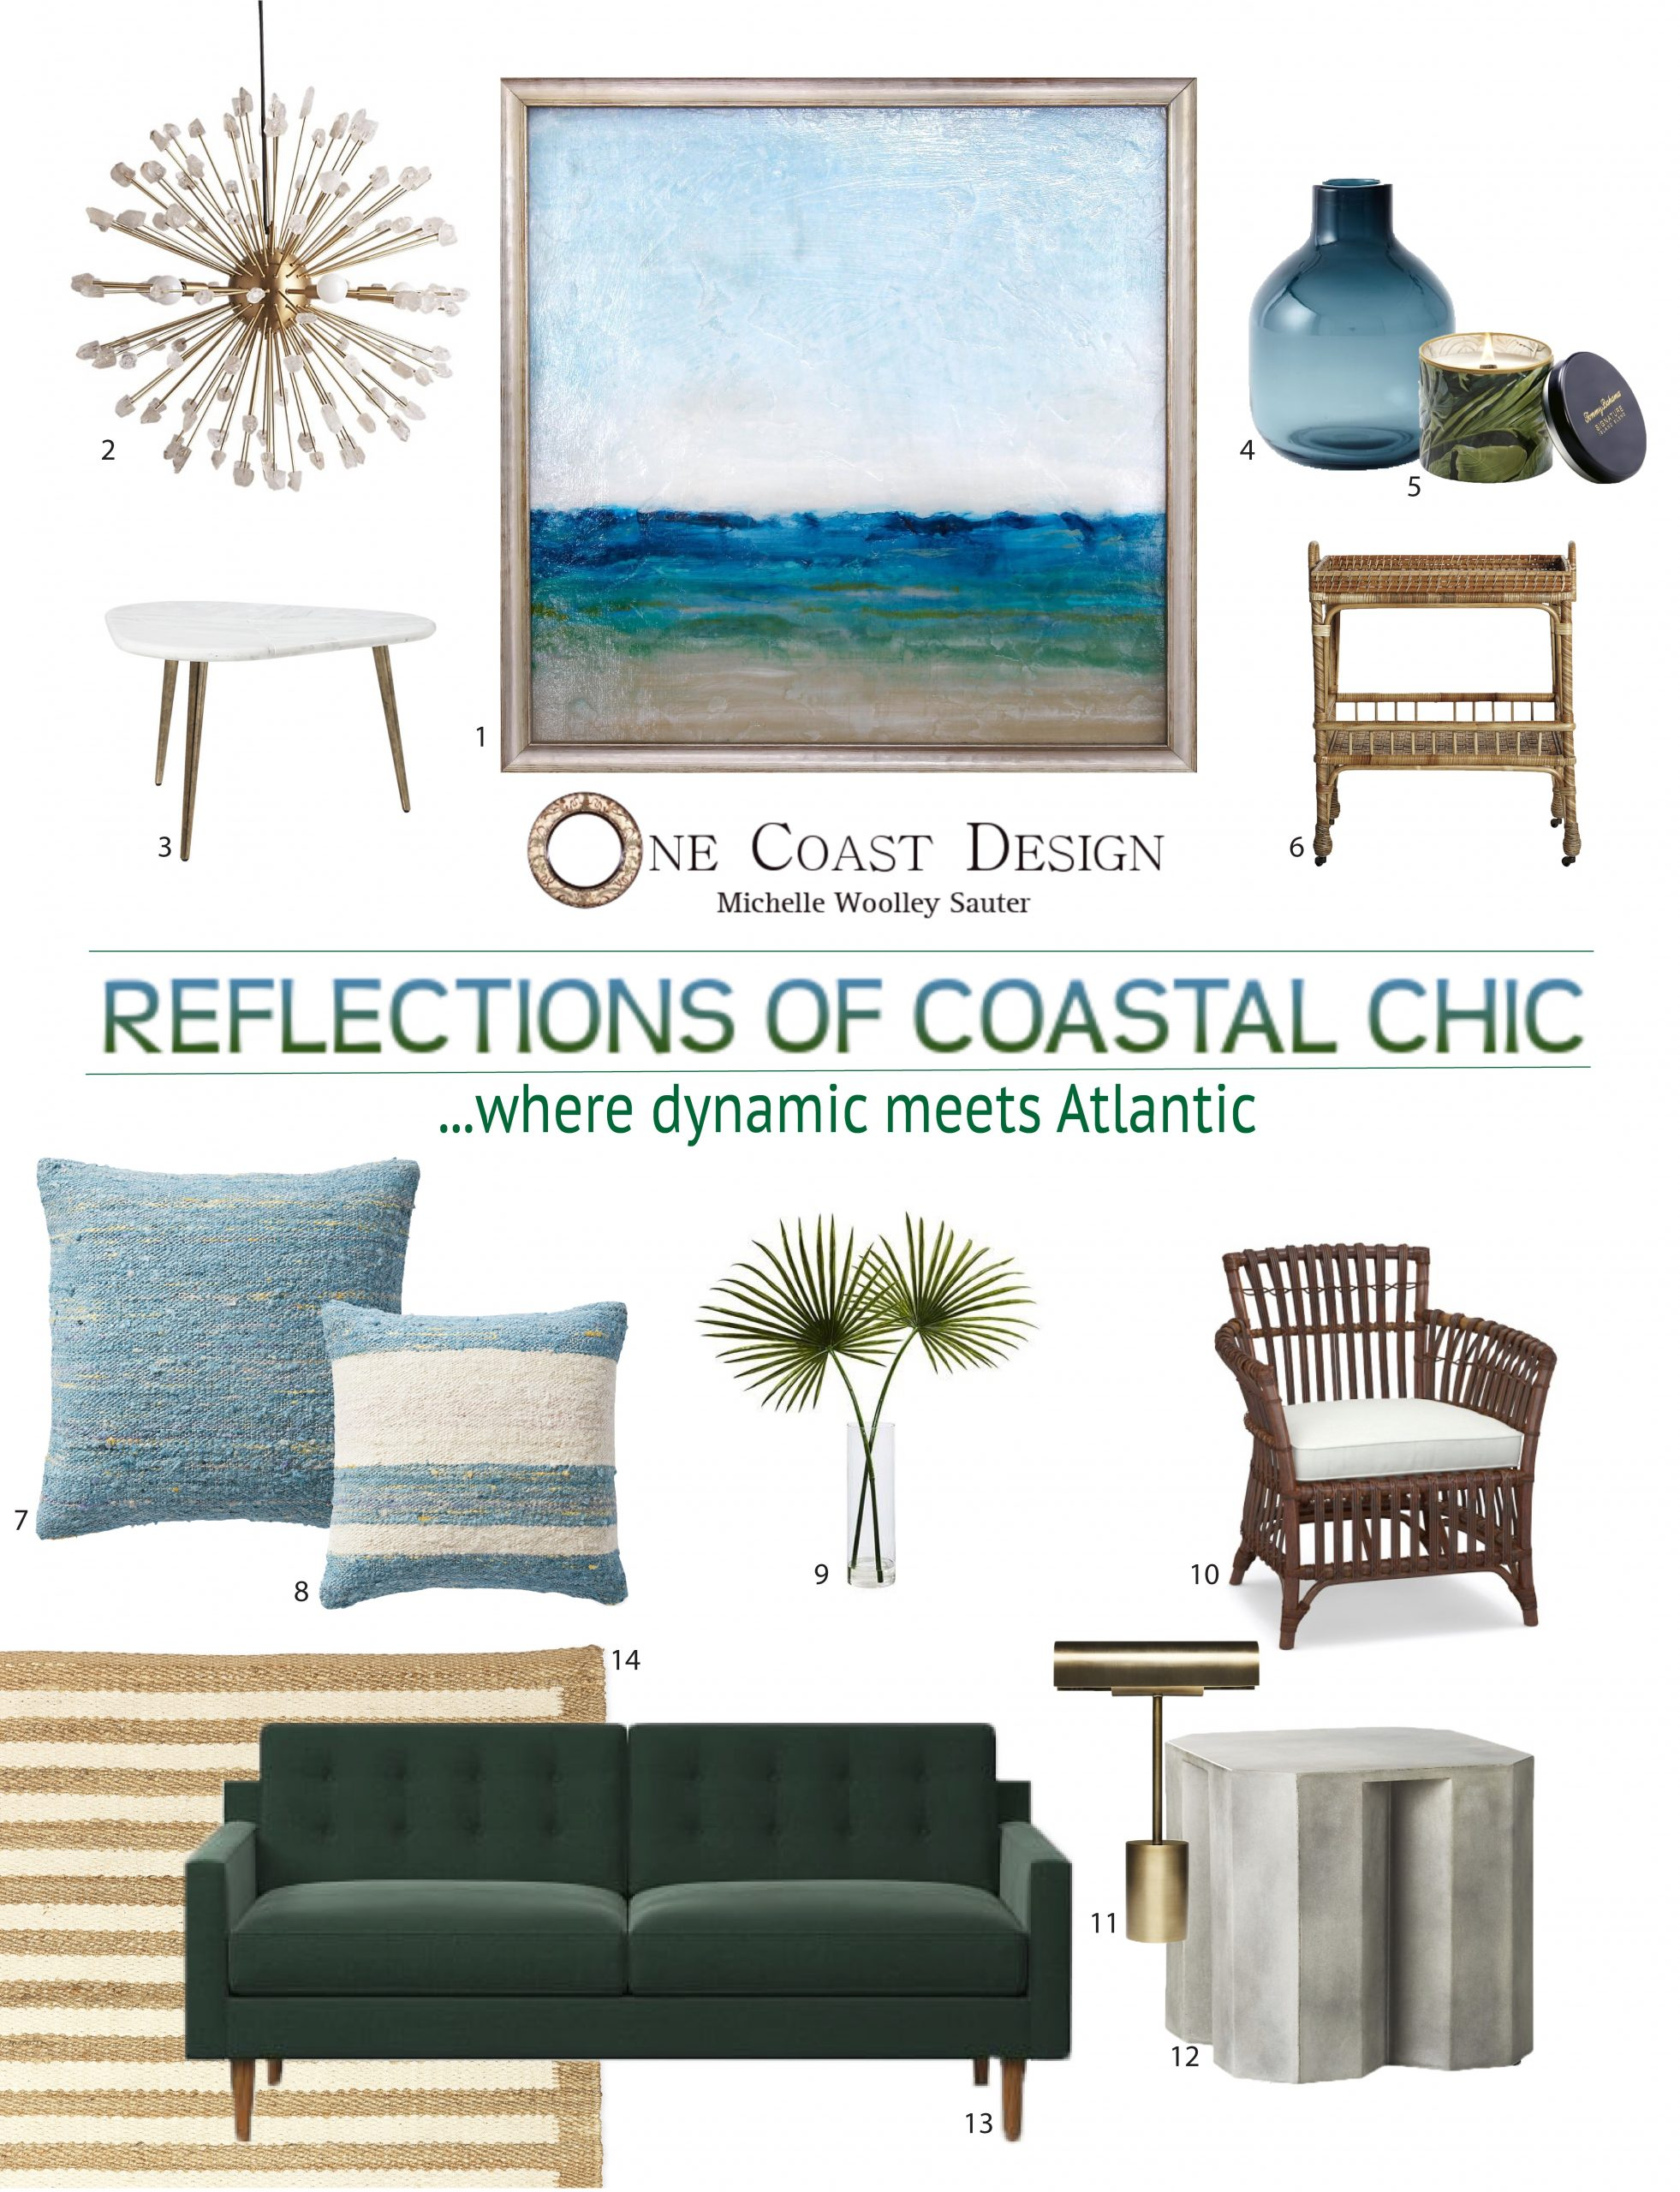 Reflections of Coastal Chic, One Coast Design, Michelle Woolley Sauter